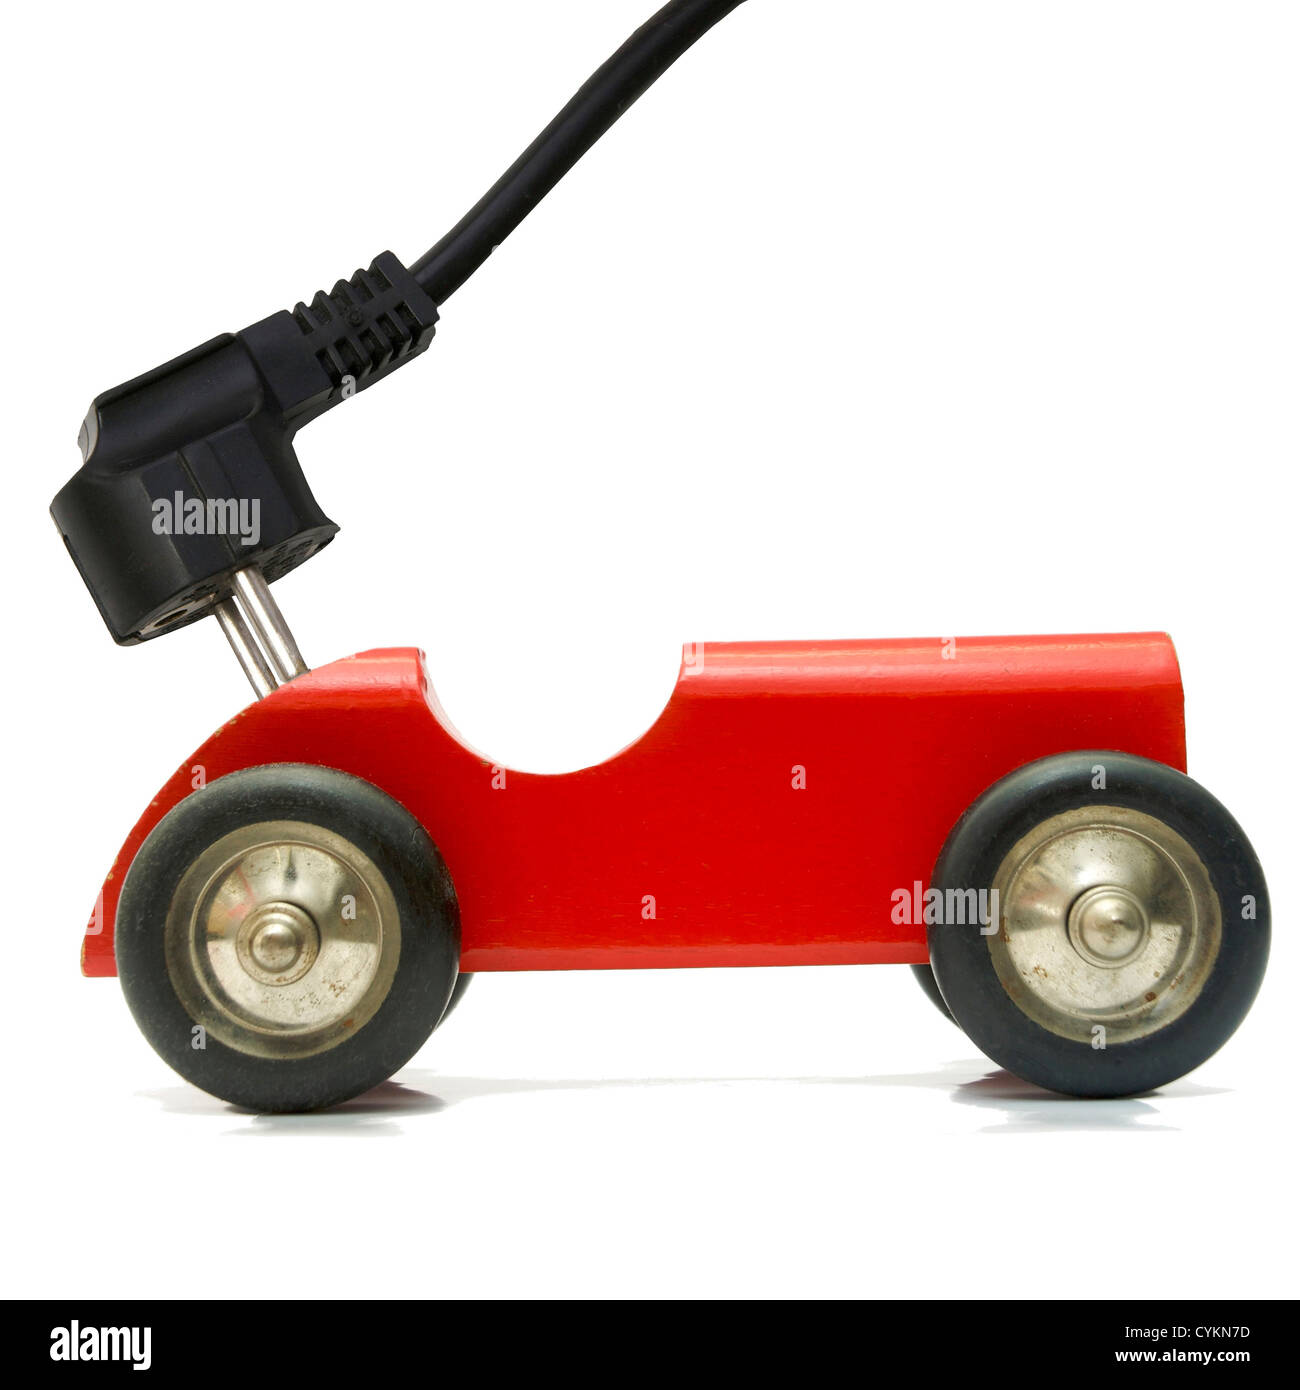 Small toy vehicle plugged in and charging using electricity plug concept - Stock Image